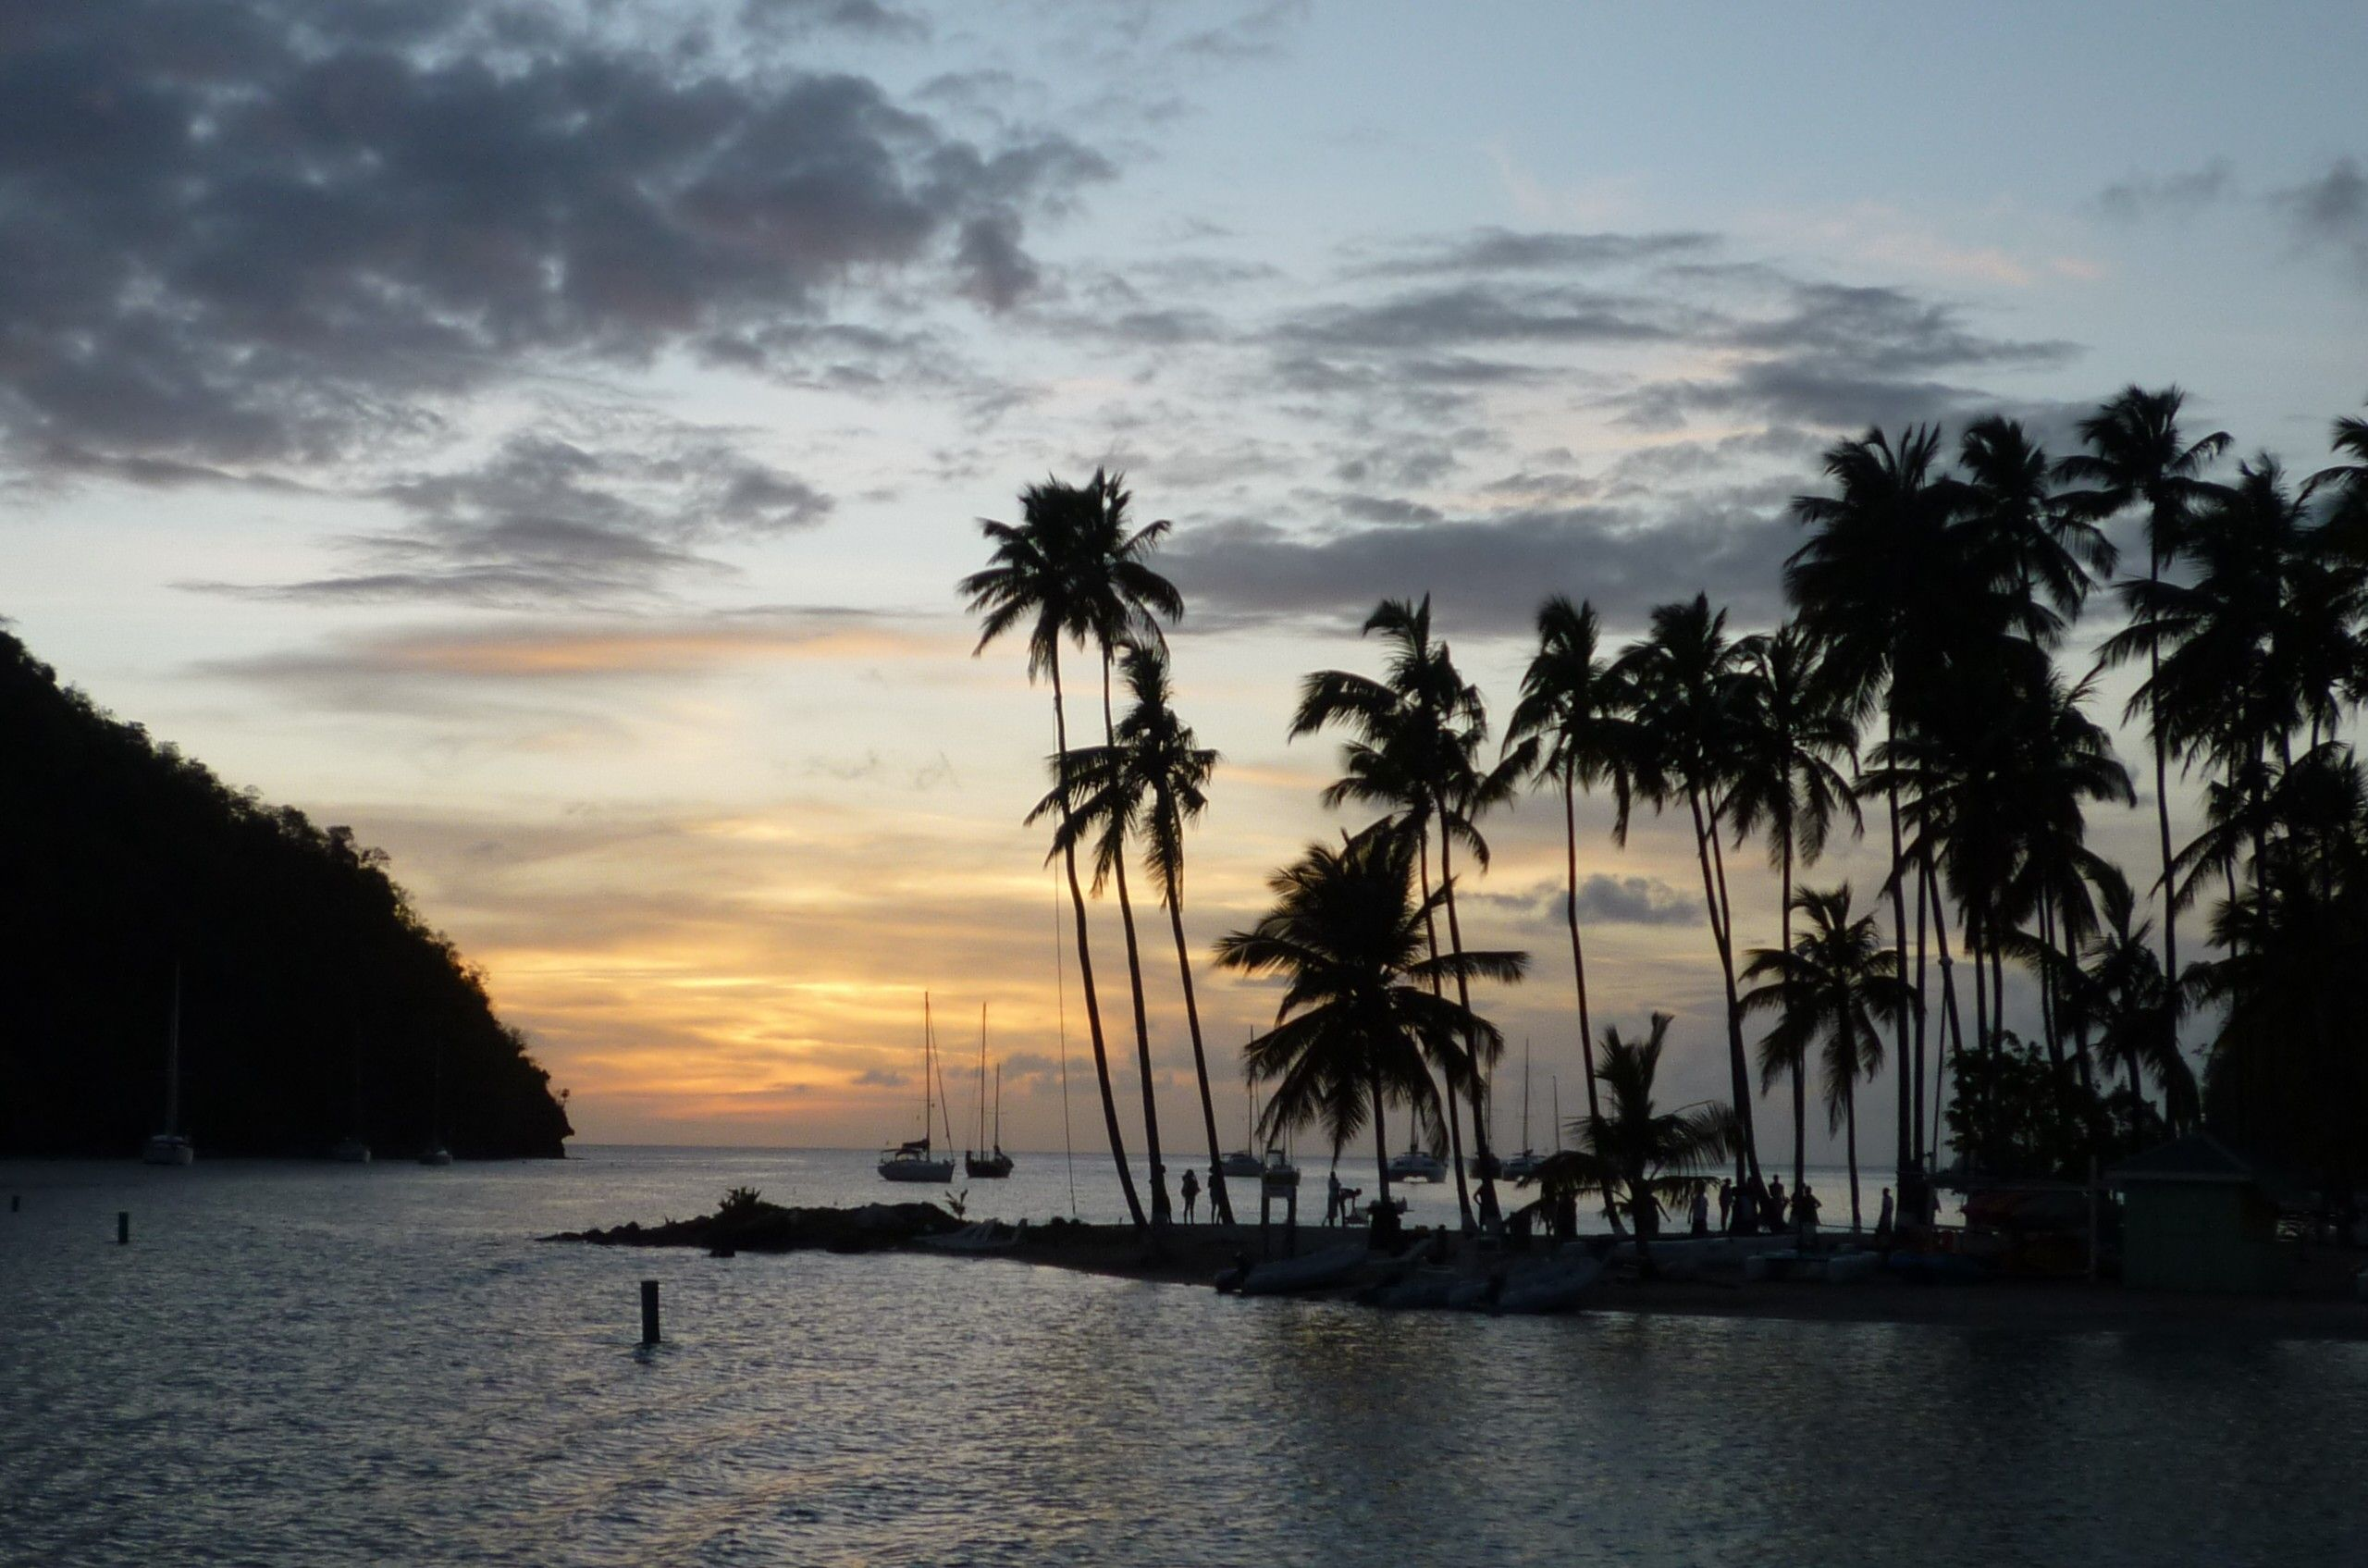 Marigot Bay at sunset - location for Marco and Juliet's first kiss!